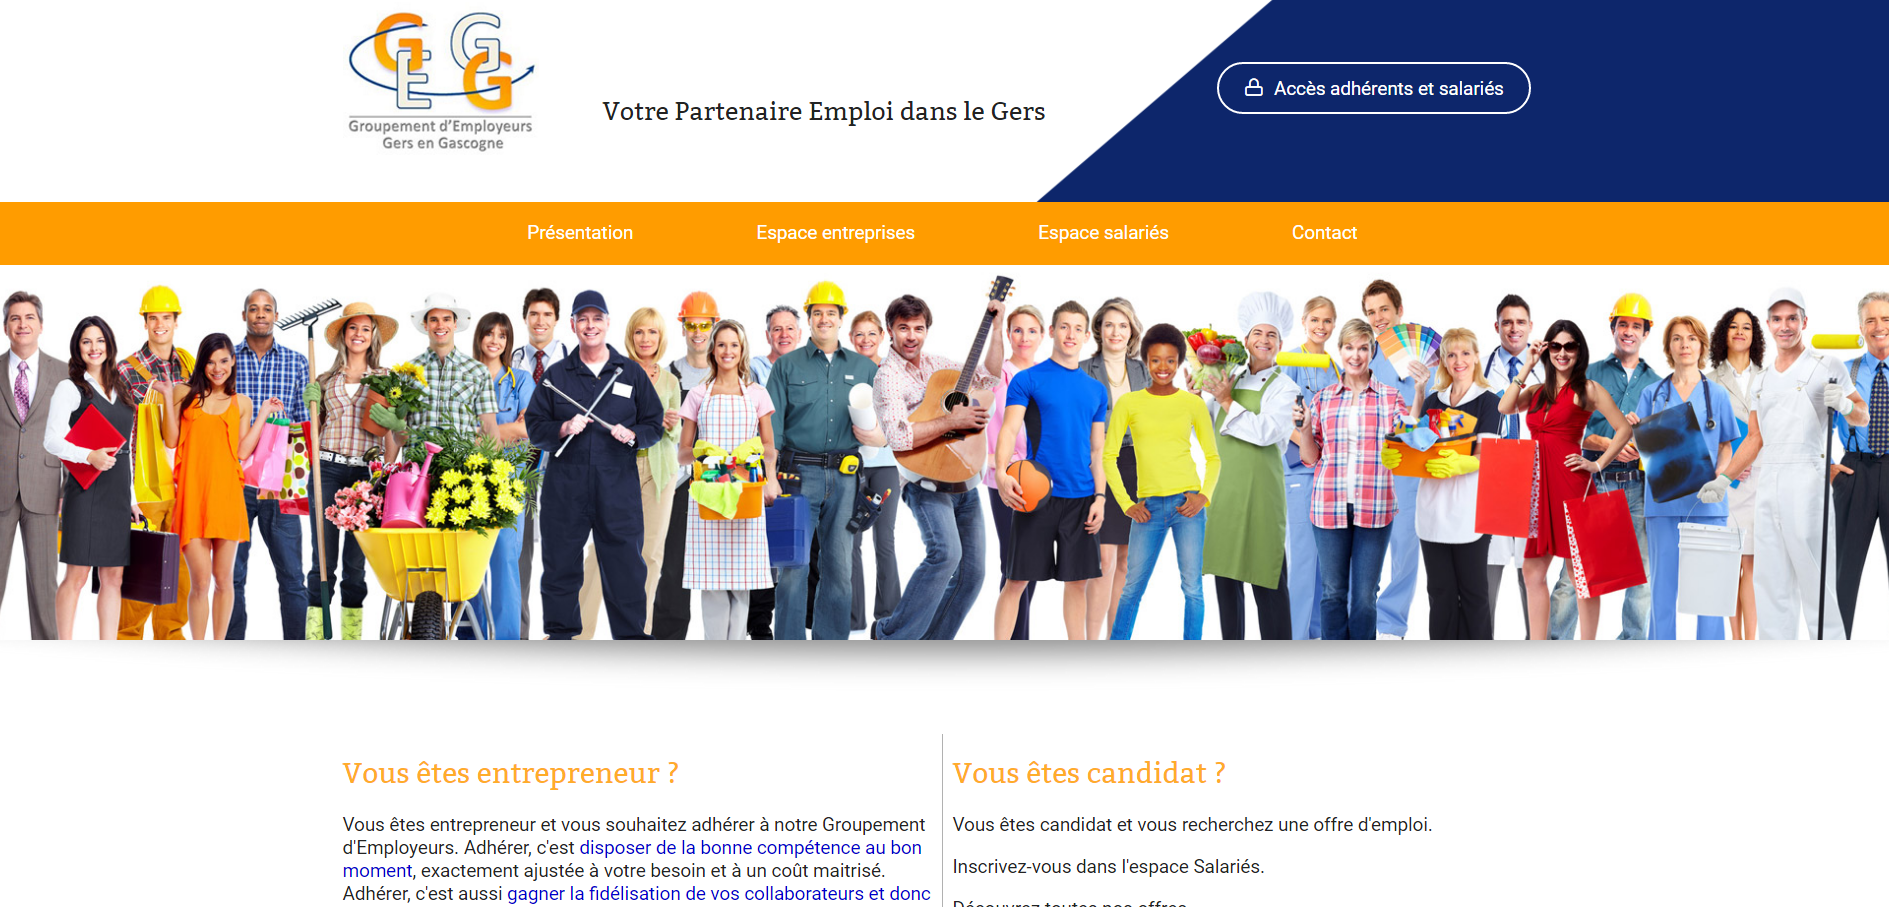 google analytics, referencement naturel, referencement payant